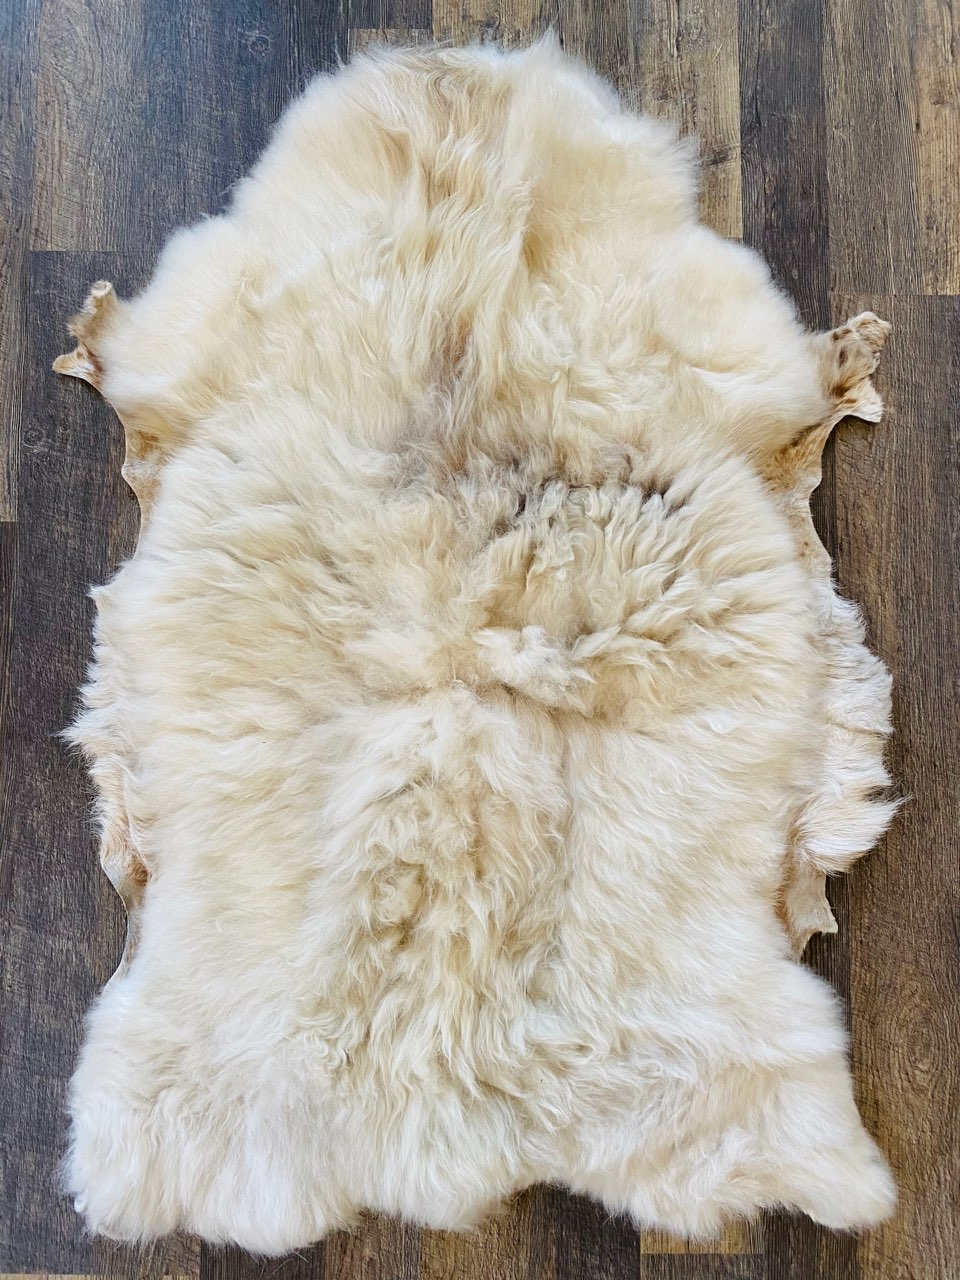 Sheep Pelt #1905